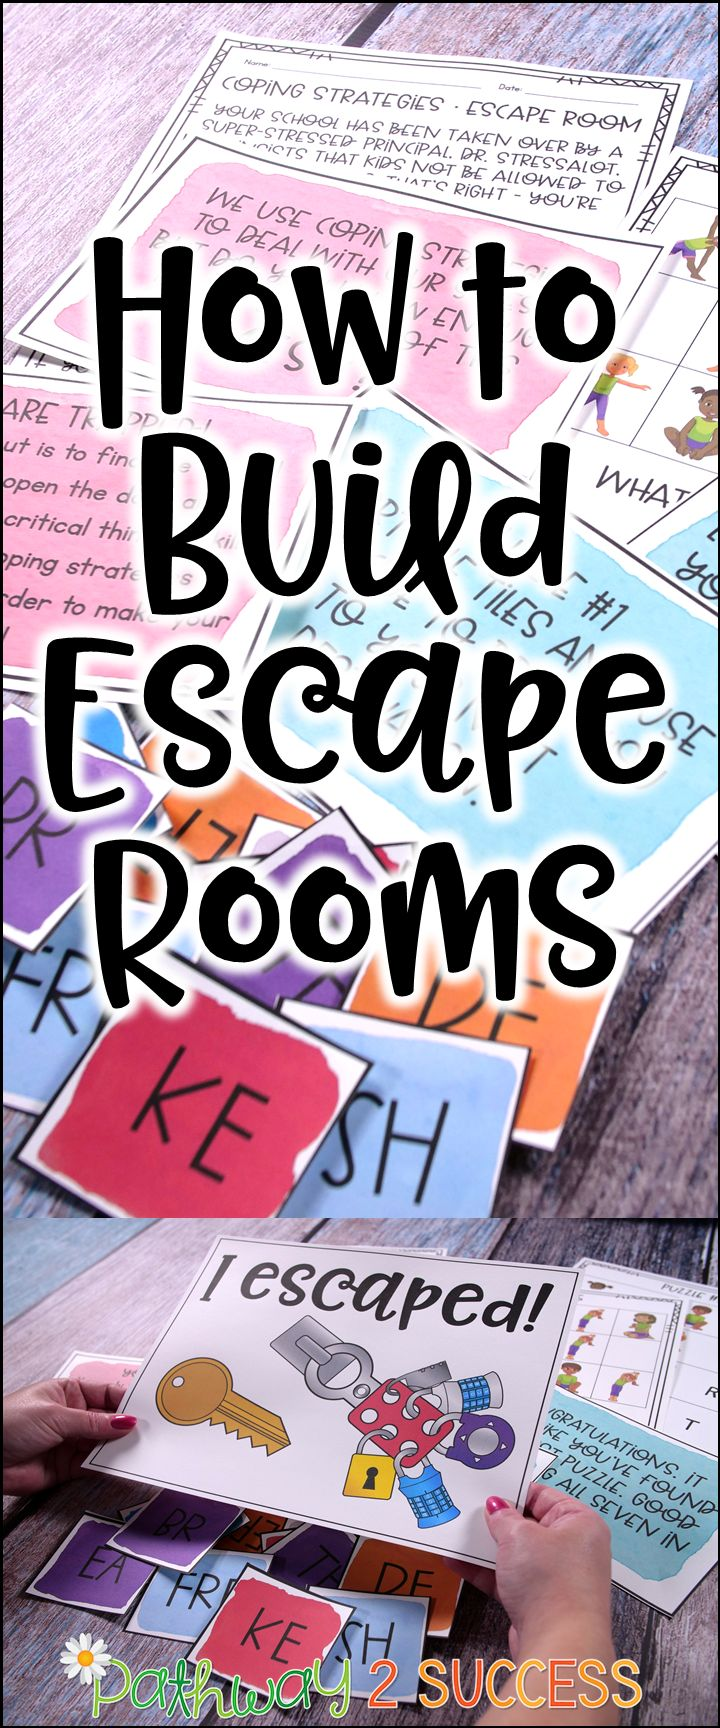 How you can build escape rooms as learning activities for kids and young adults! Did you know you can really teach ANY skills with an escape room? This post shares info on how you can create your own activities and puzzles to help your students learn. #pathway2success #escaperoom